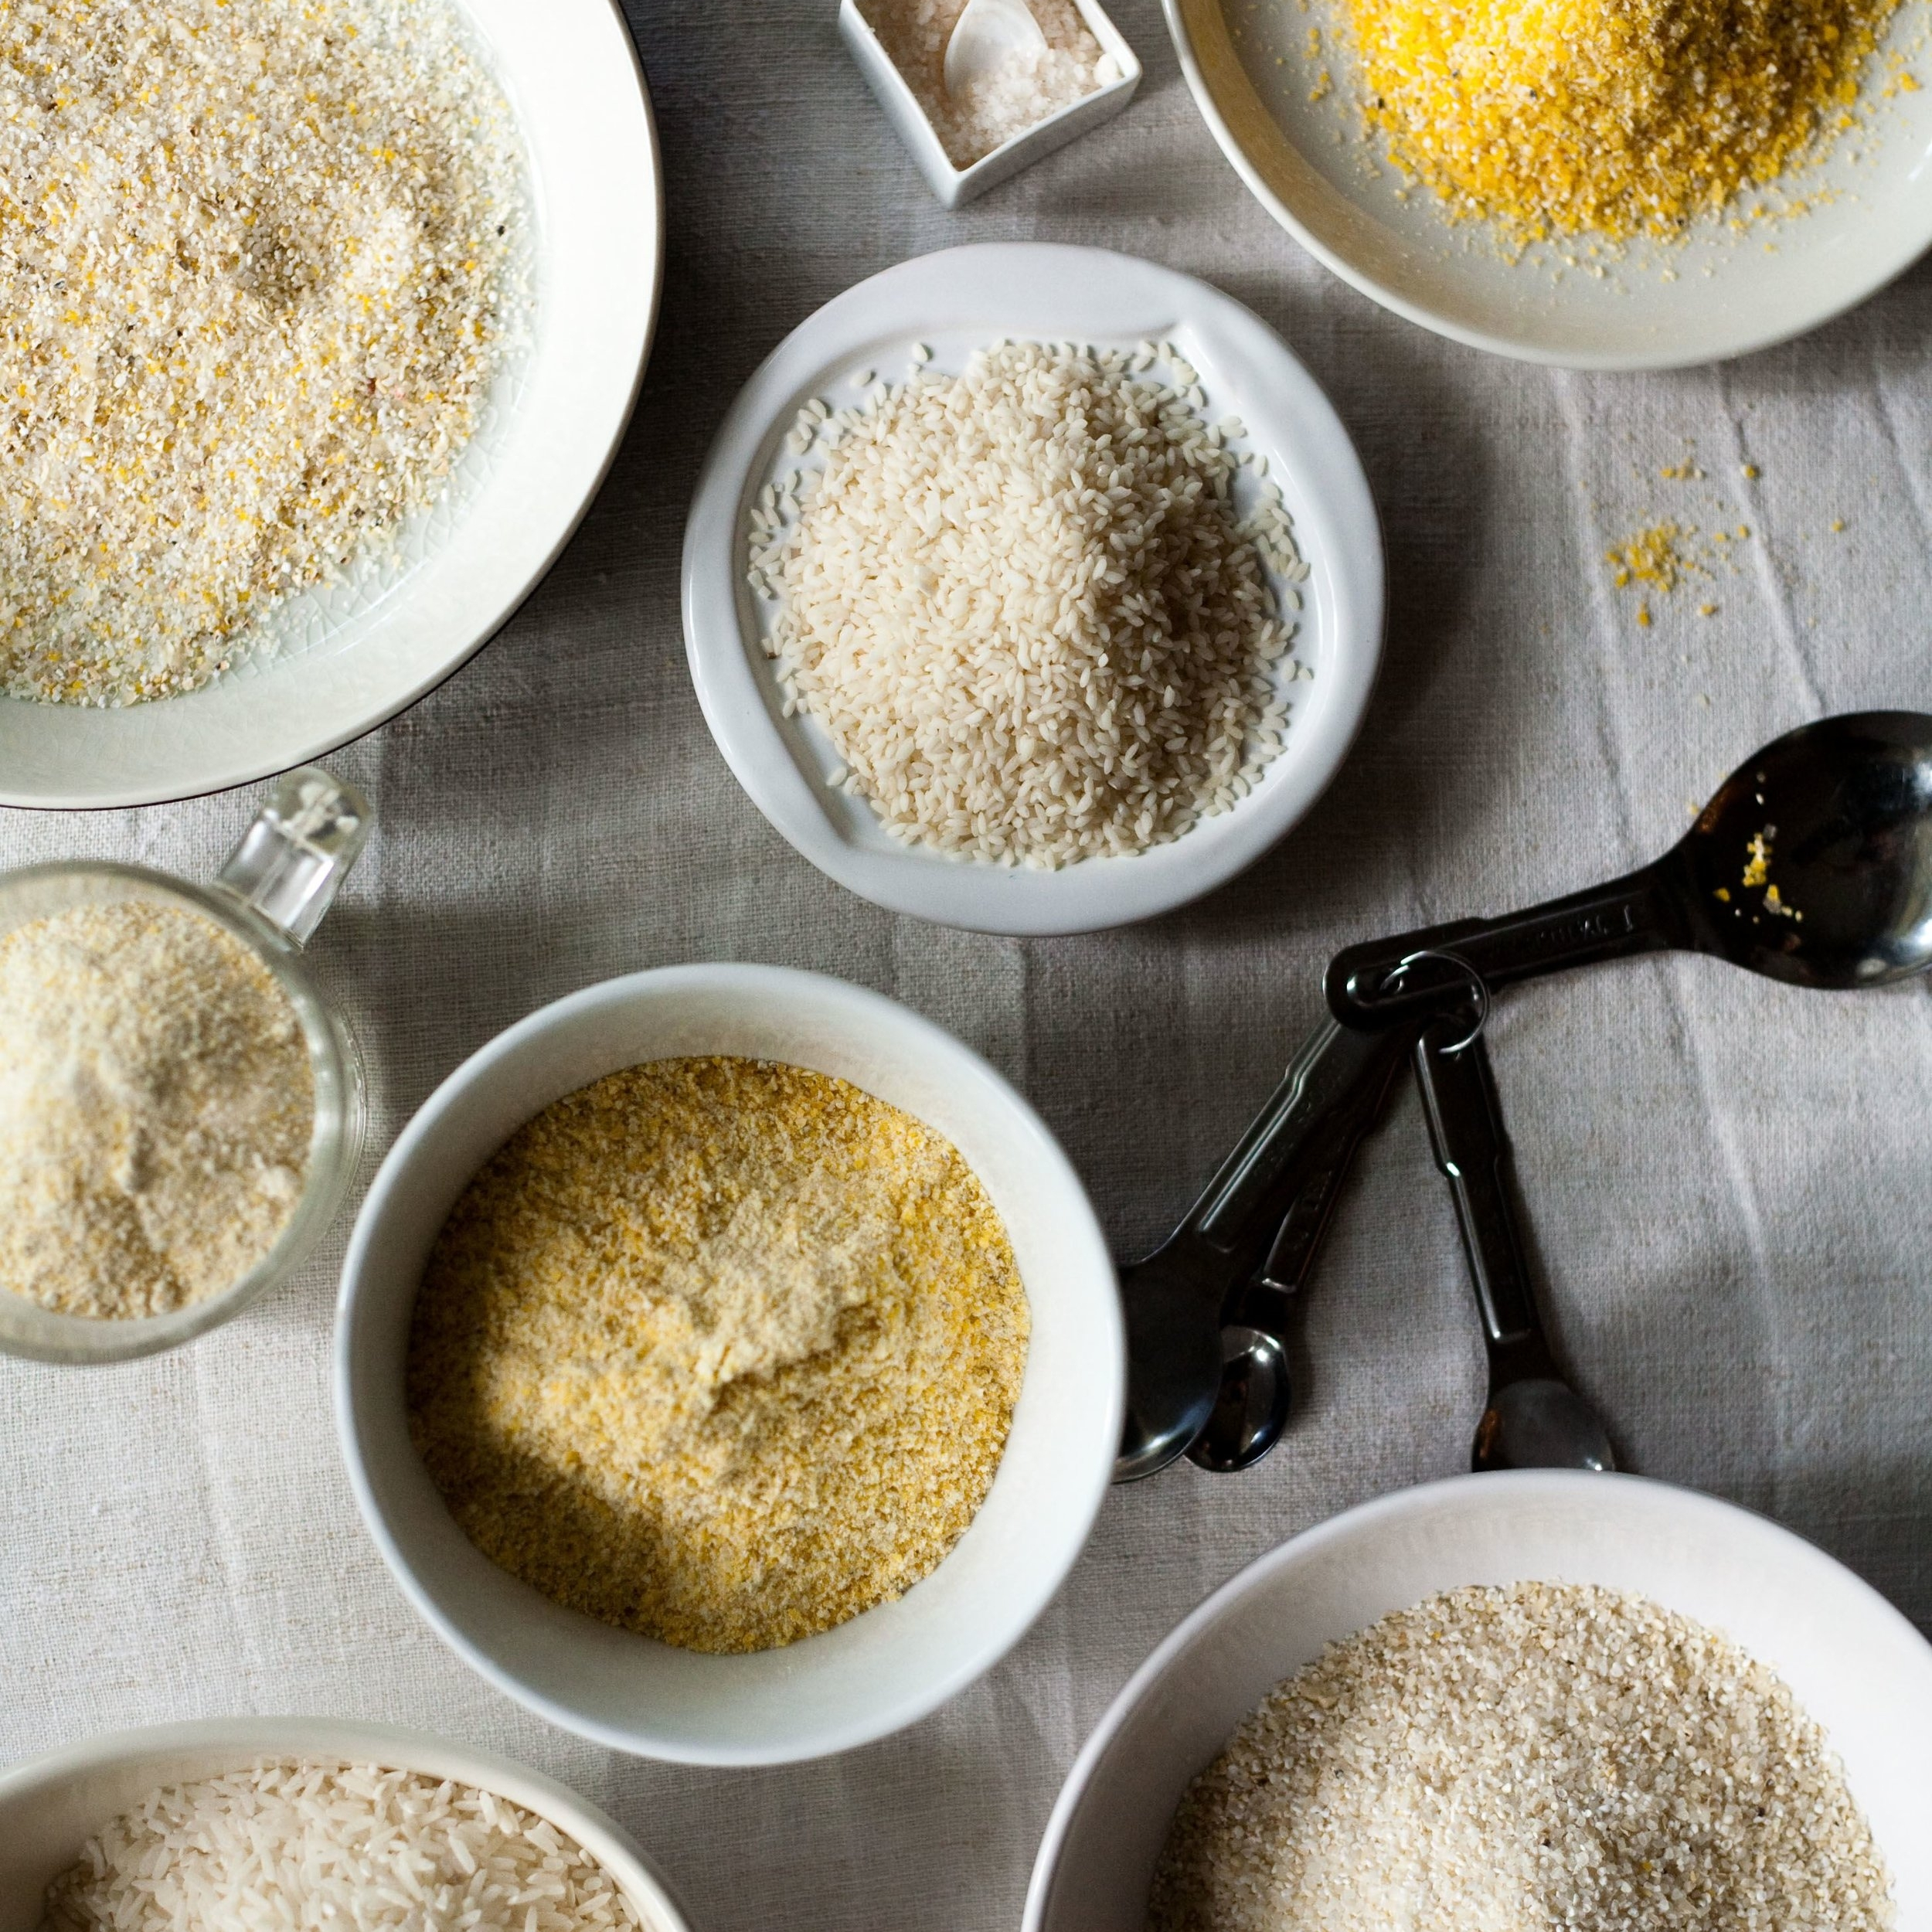 grits and cornmeal.jpg